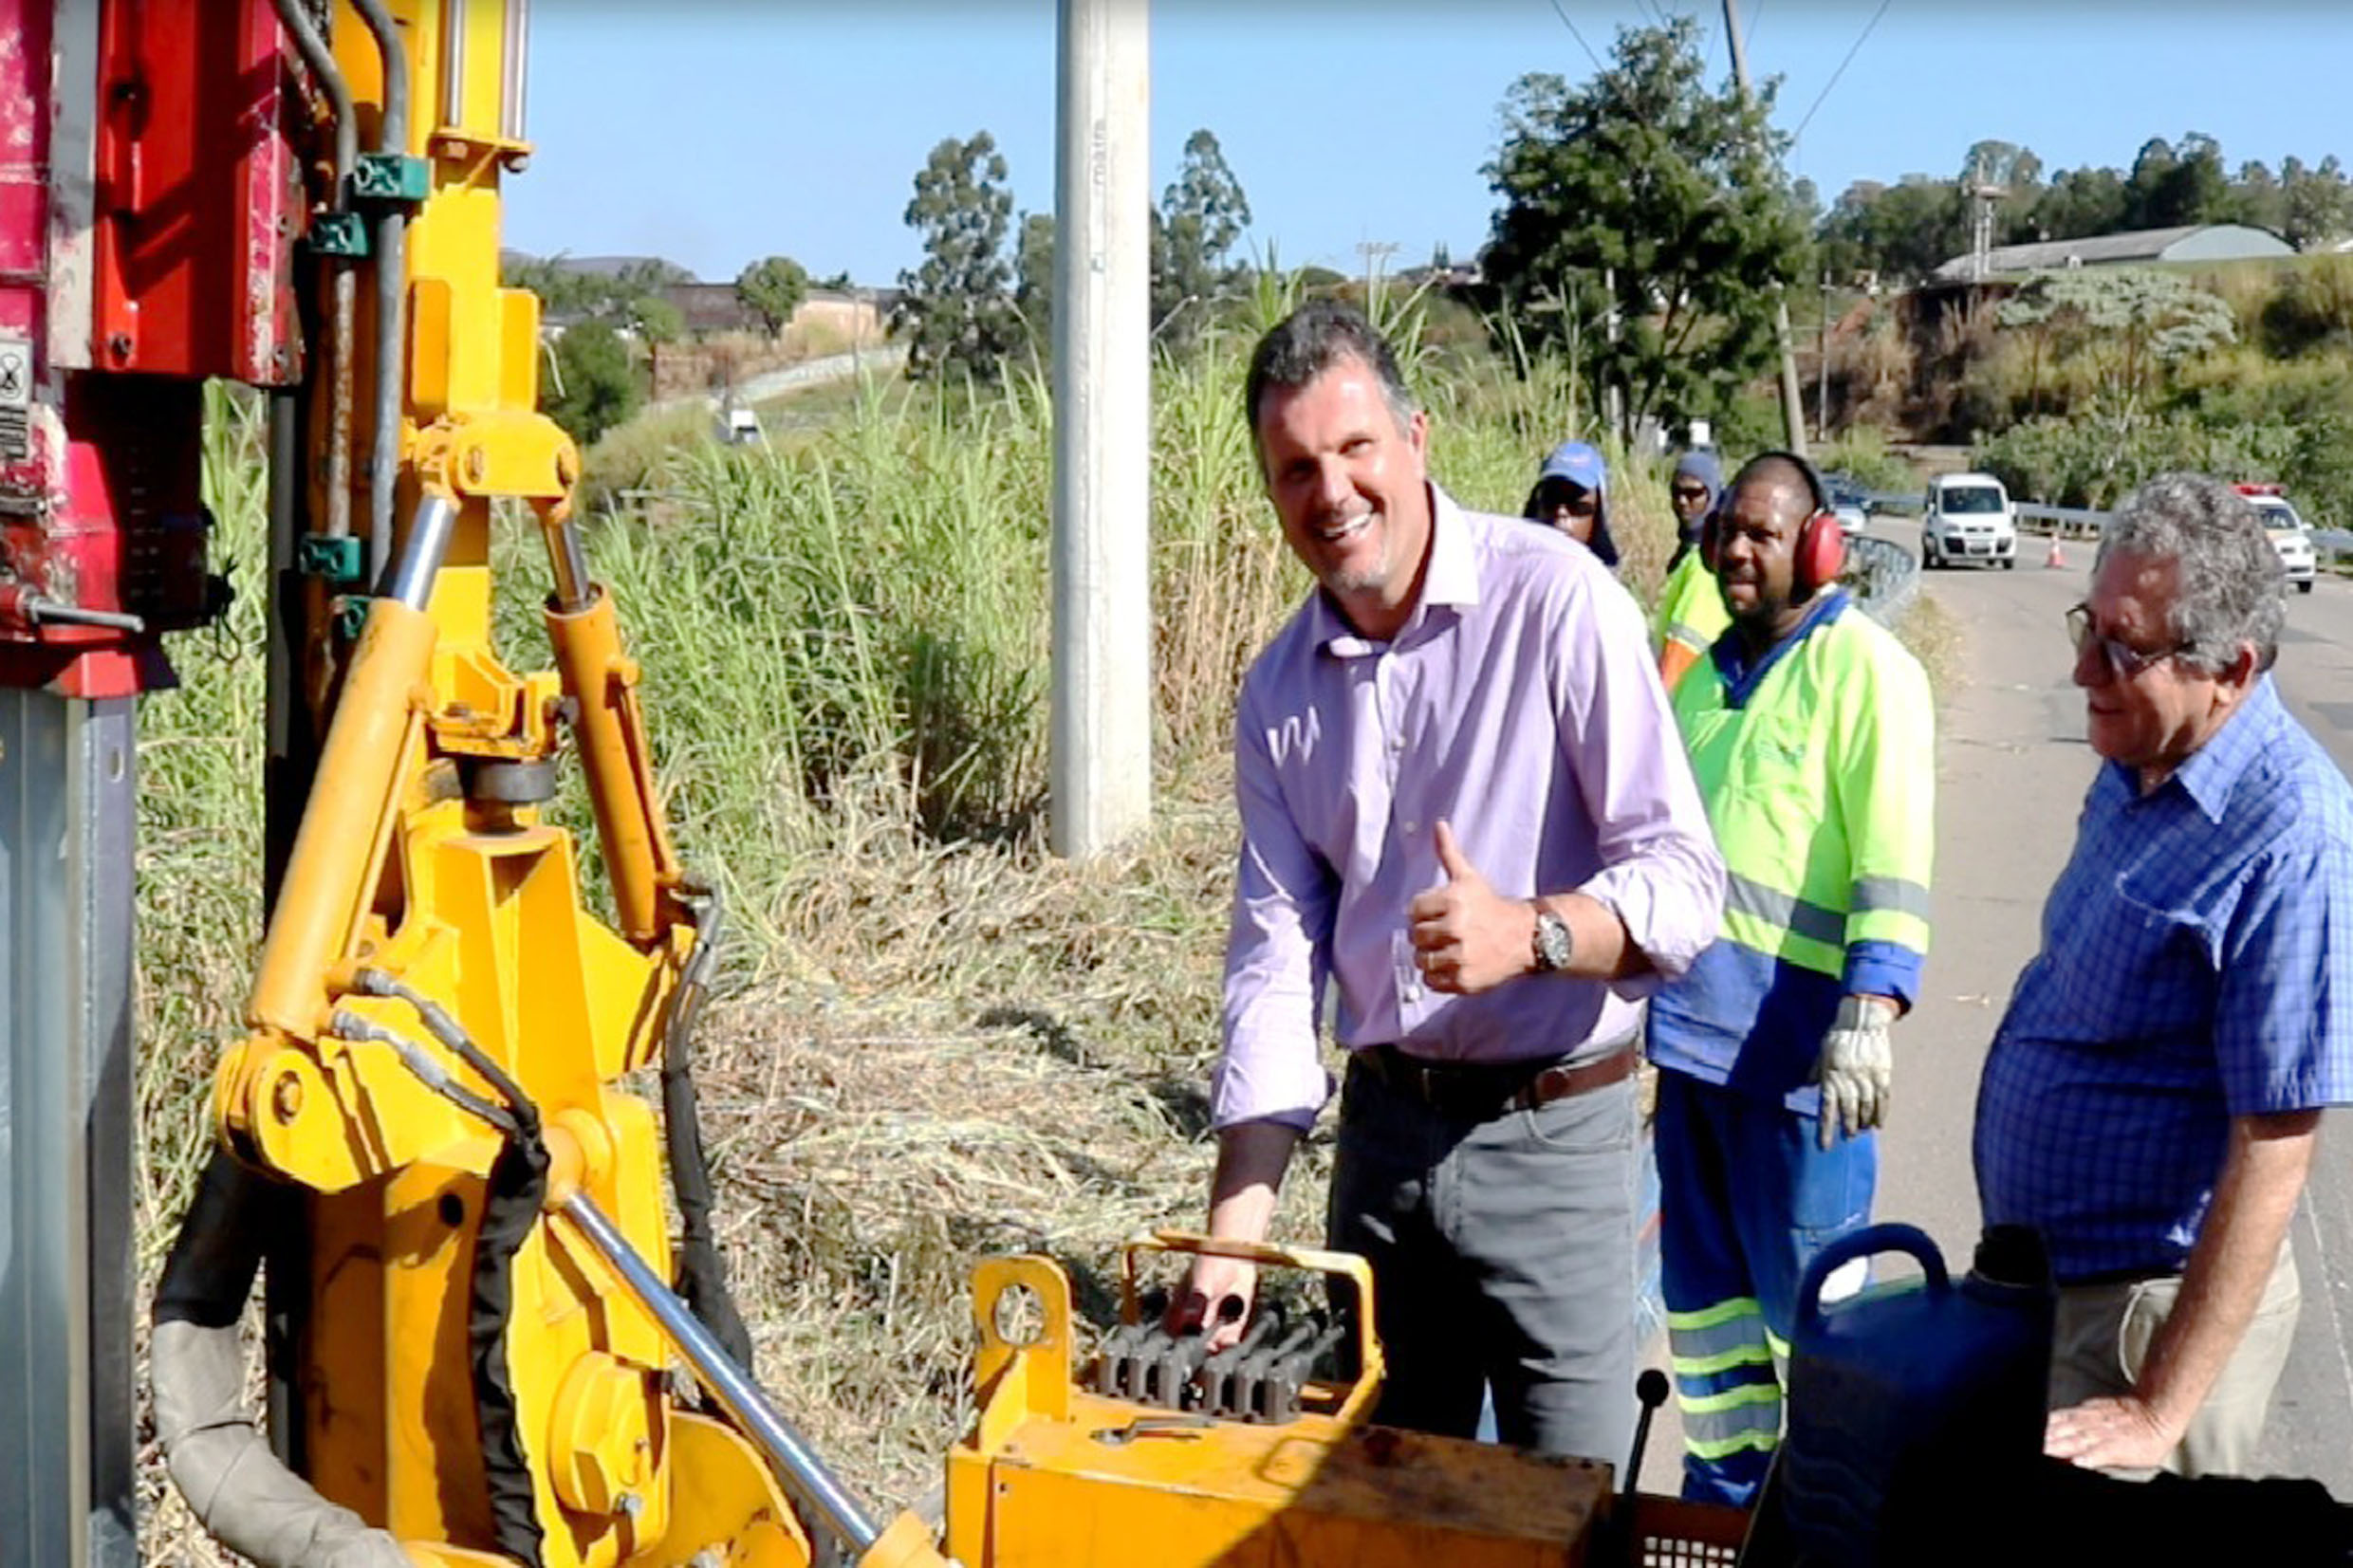 Junior Aprillanti (centro) durante visita às obras<a style='float:right' href='https://www3.al.sp.gov.br/repositorio/noticia/N-07-2017/fg205665.jpg' target=_blank><img src='/_img/material-file-download-white.png' width='14px' alt='Clique para baixar a imagem'></a>